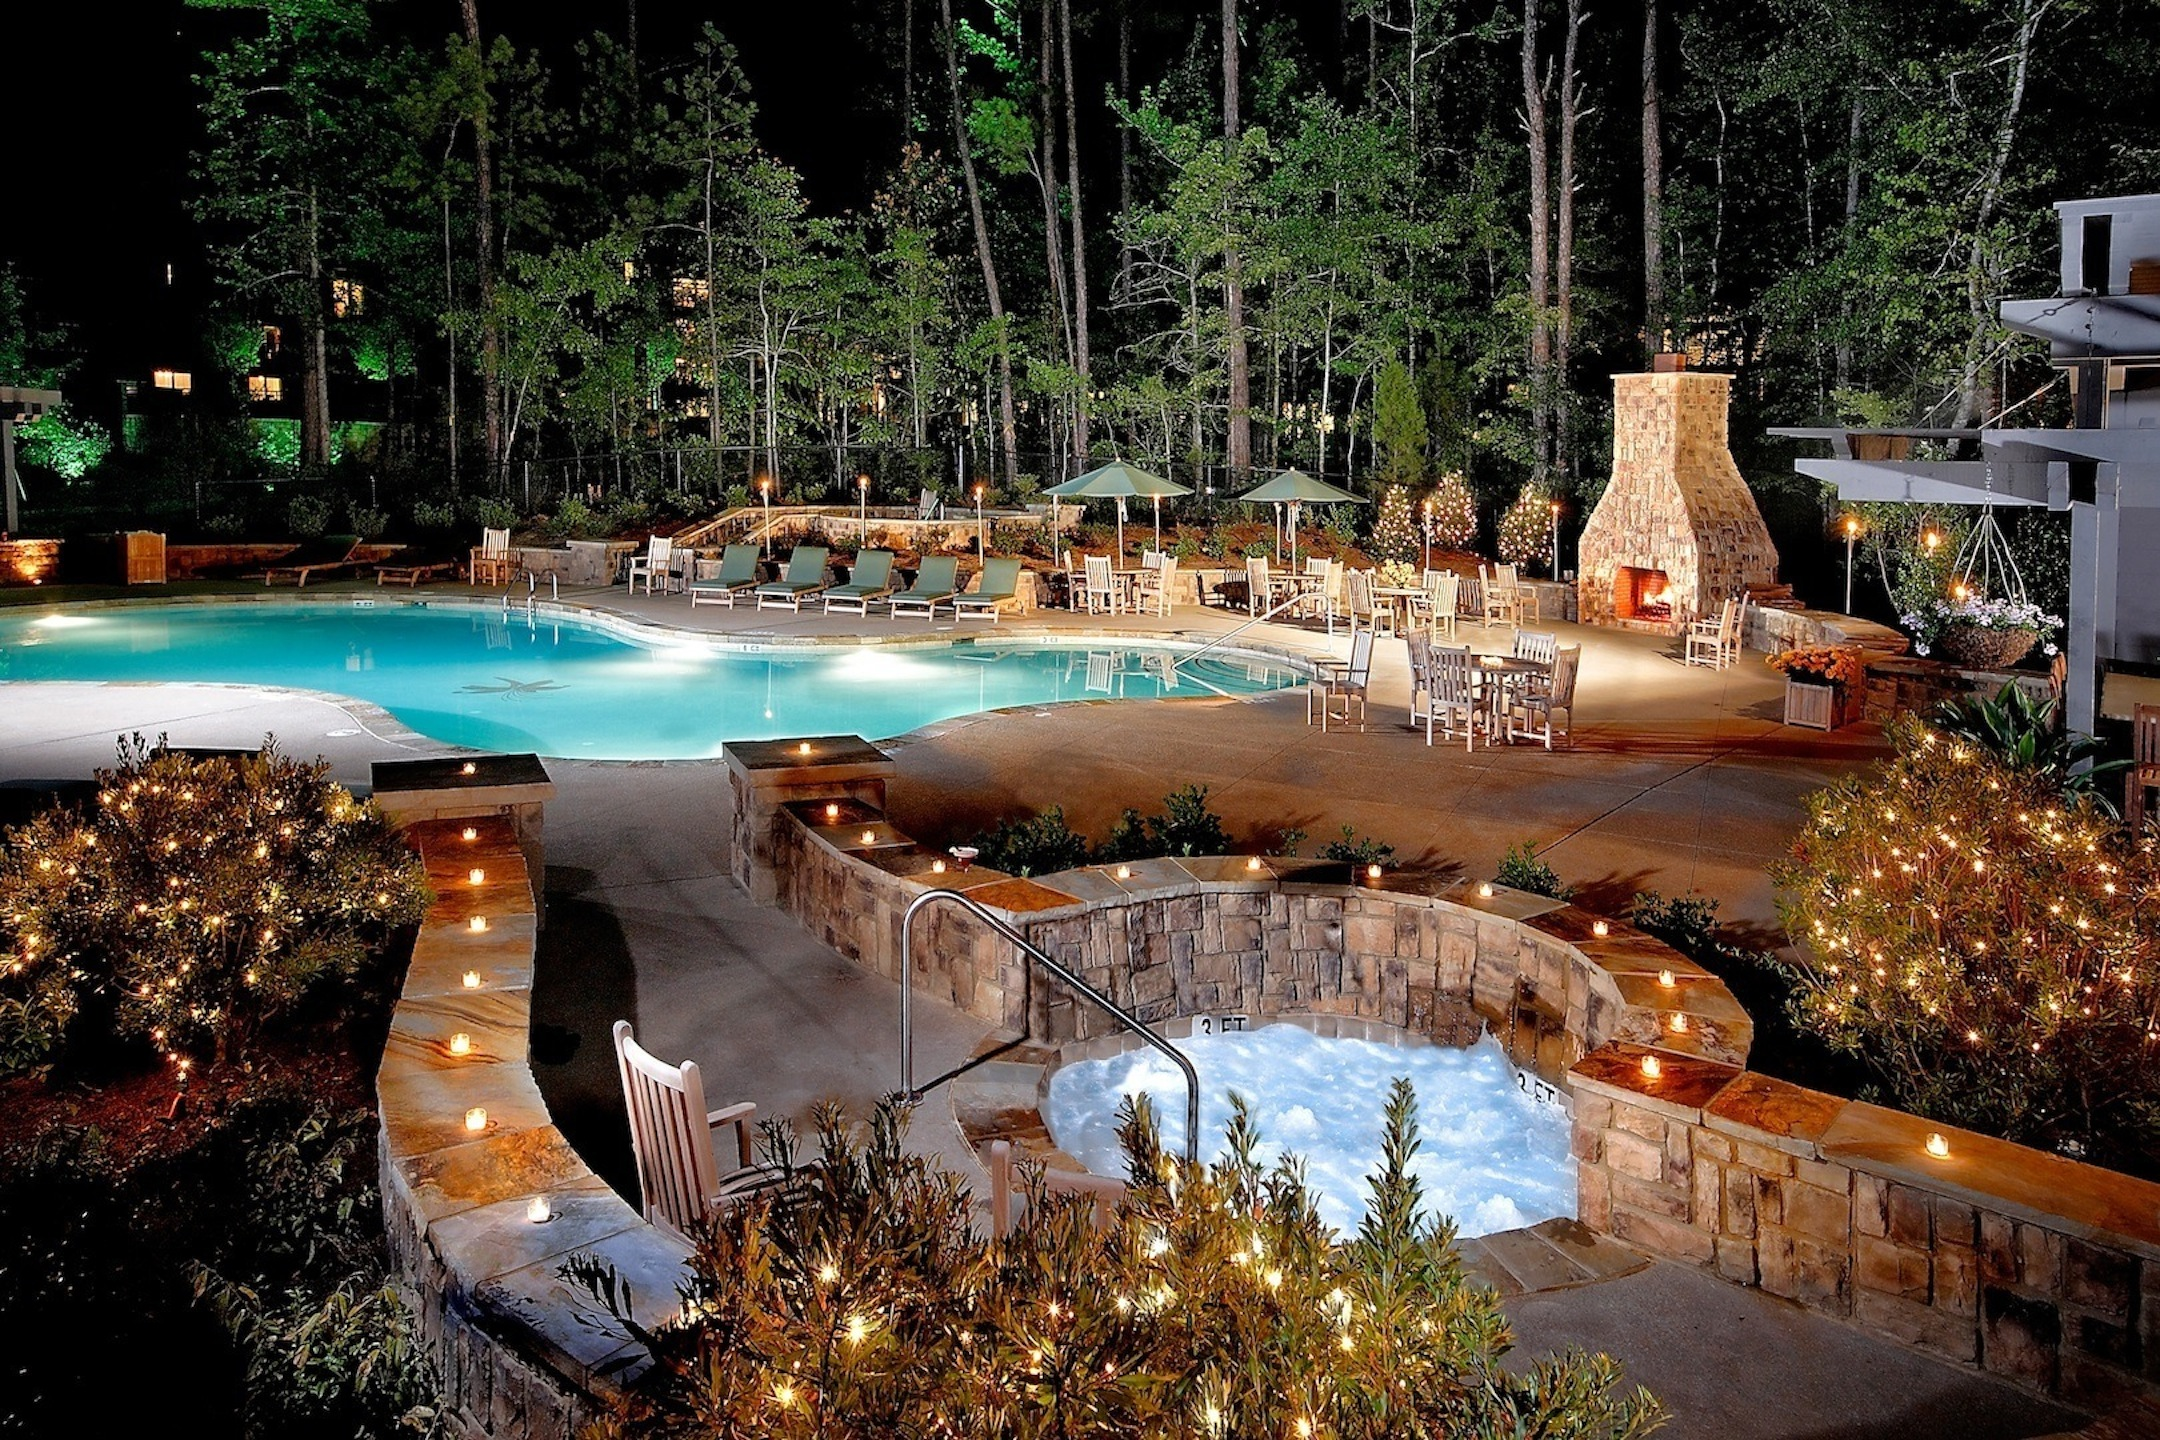 Weekend Getaway The Lodge And Spa At Callaway Gardens Travelgirlmag